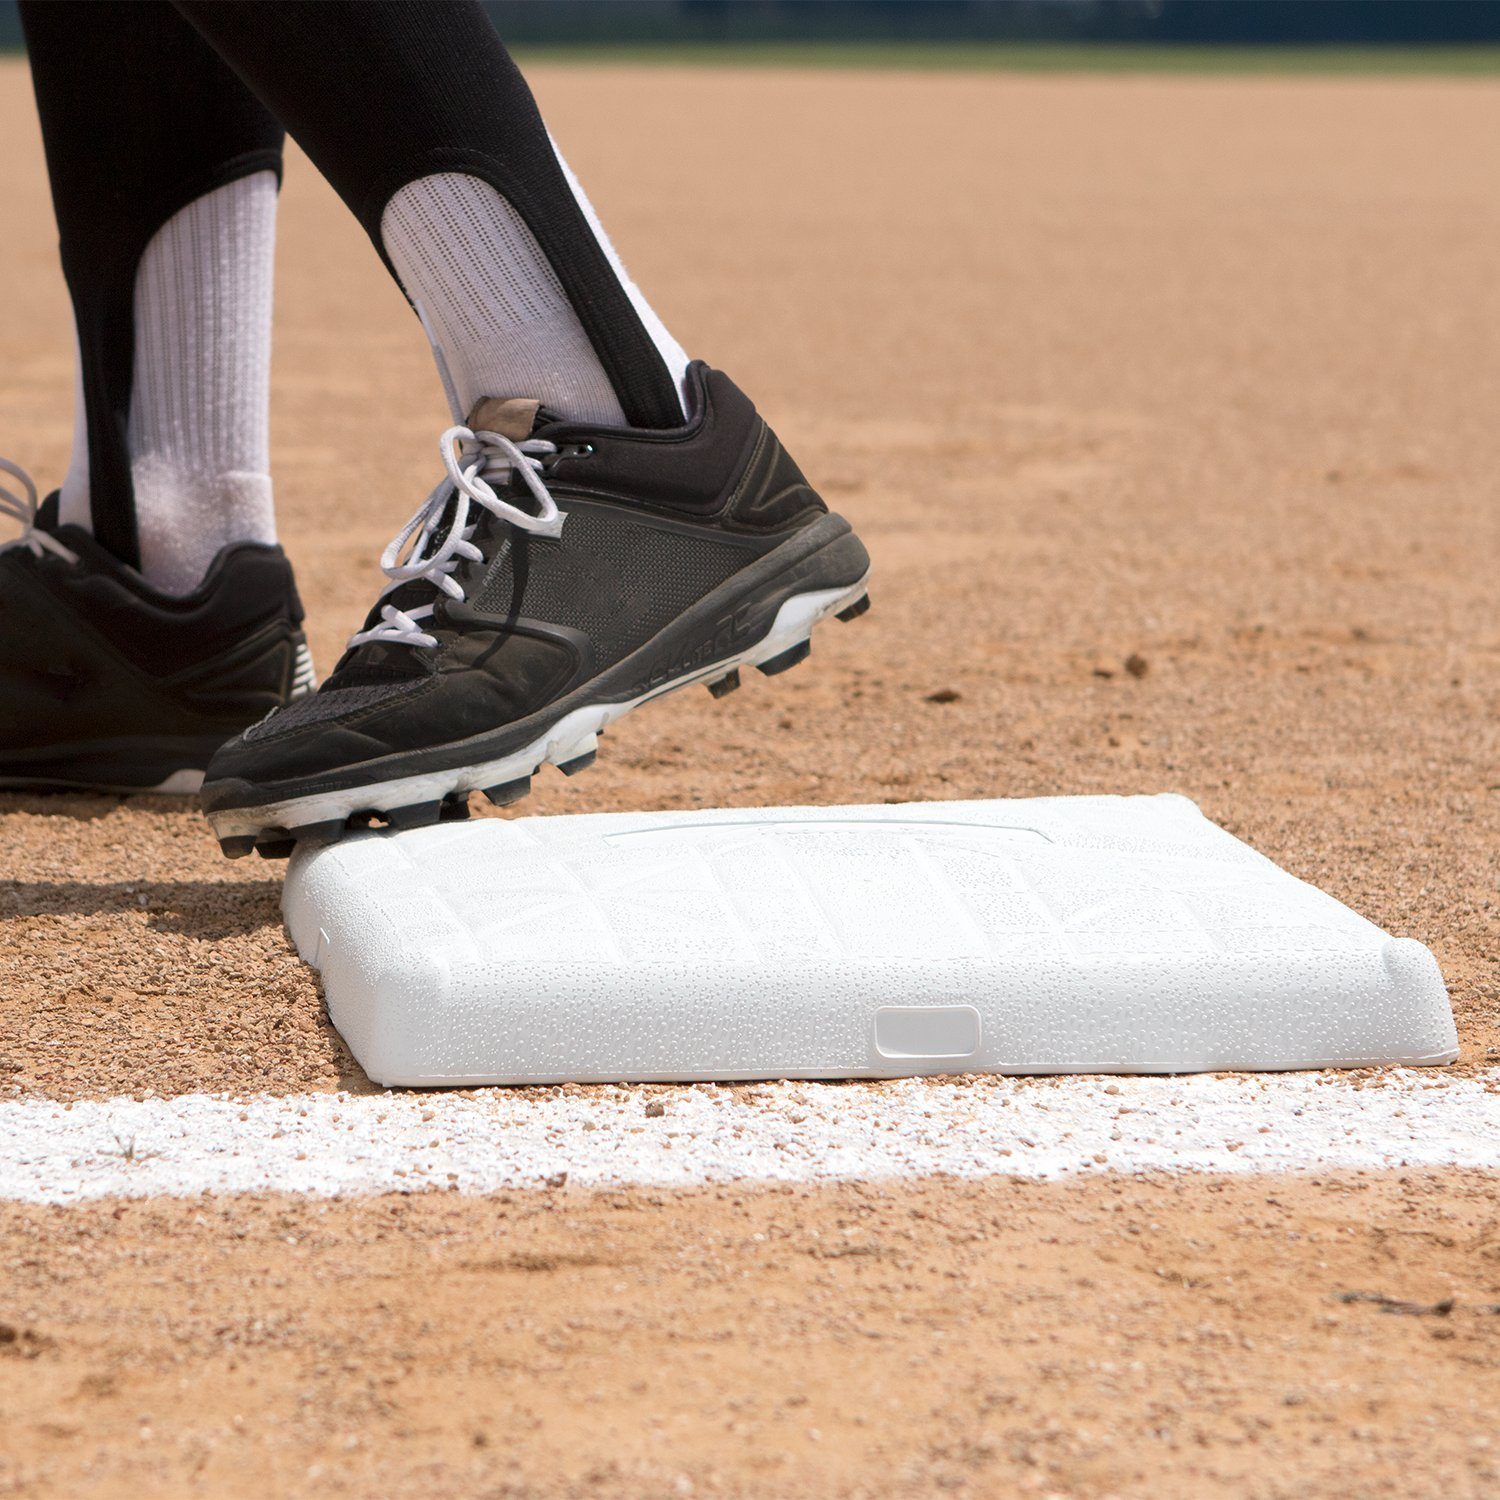 Champion Sports Impact Baseball Bases: Hollywood Type Safety Collapsible Bases with Anchor Plug - Sports Equipment Bags for Youth Baseball & Softball by Champion Sports (Image #5)